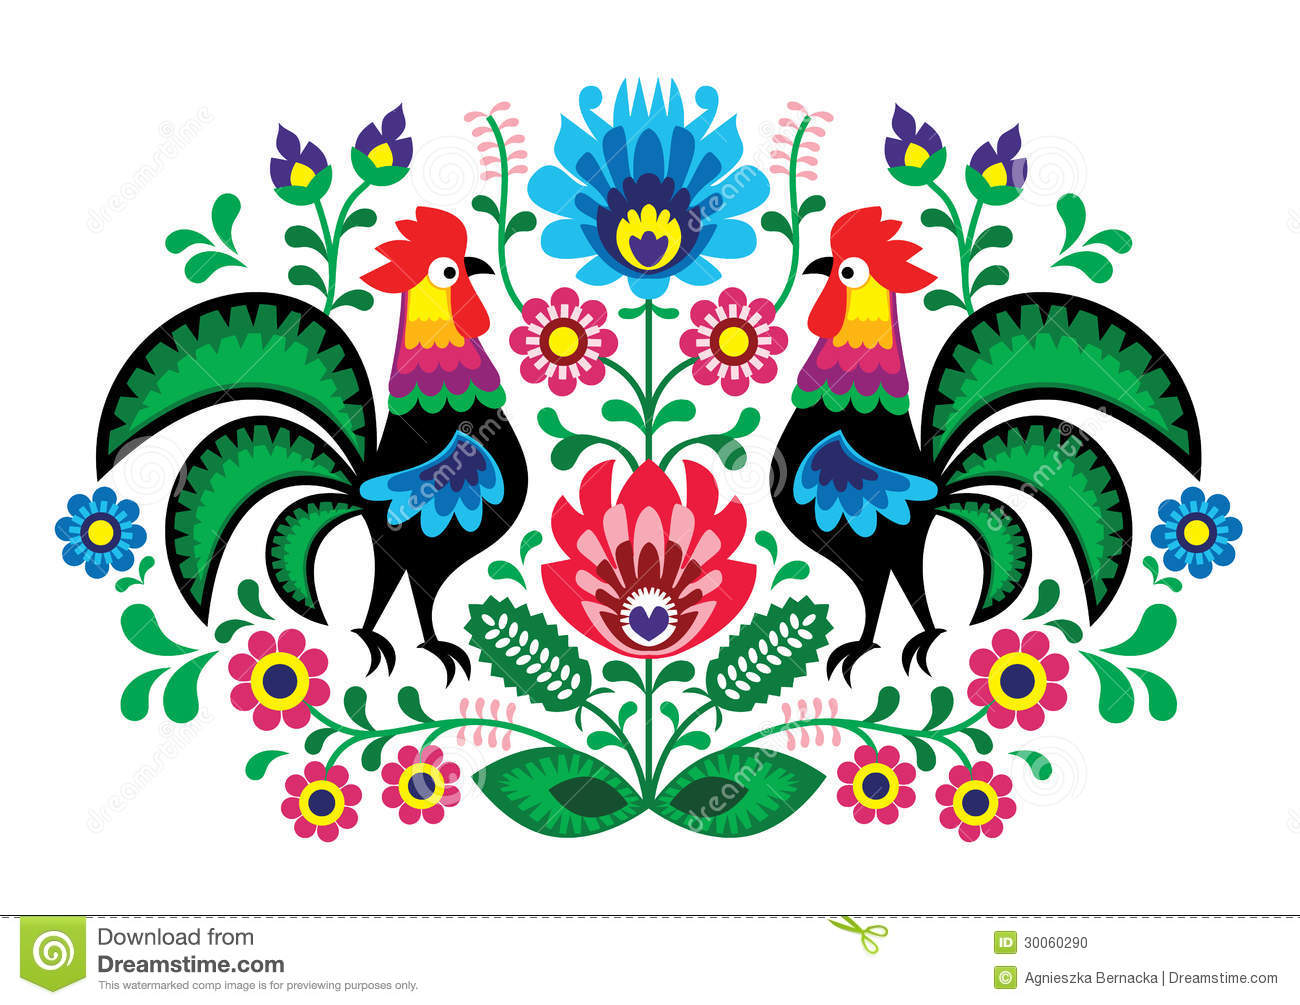 Polish floral embroidery with - traditional folk pattern